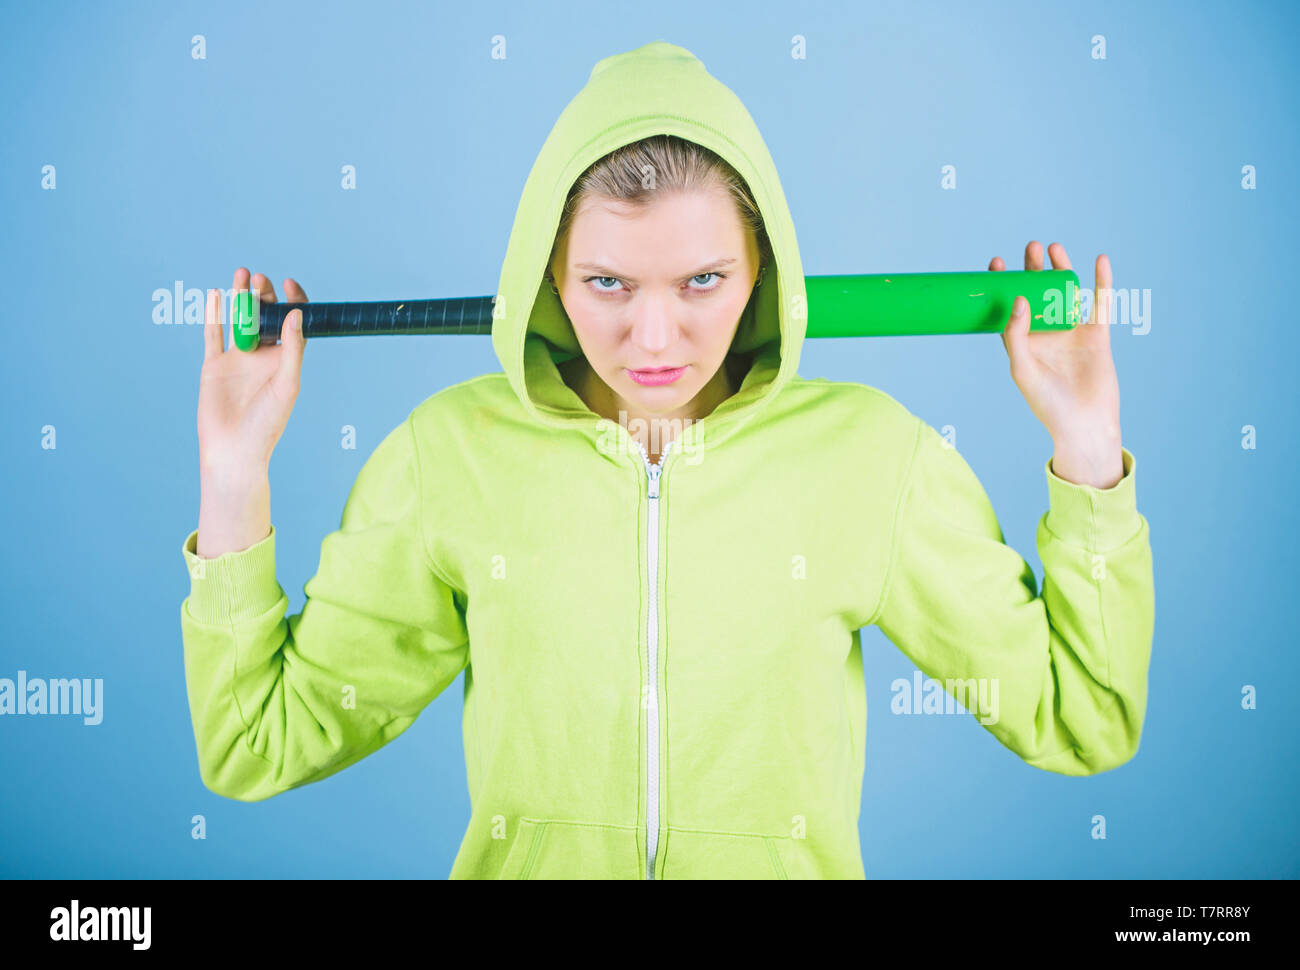 Baseball female player concept. She is dangerous. Sport game. Woman play baseball game or going to beat someone. Girl hooded jacket hold baseball bat blue background. Woman in baseball sport. - Stock Image